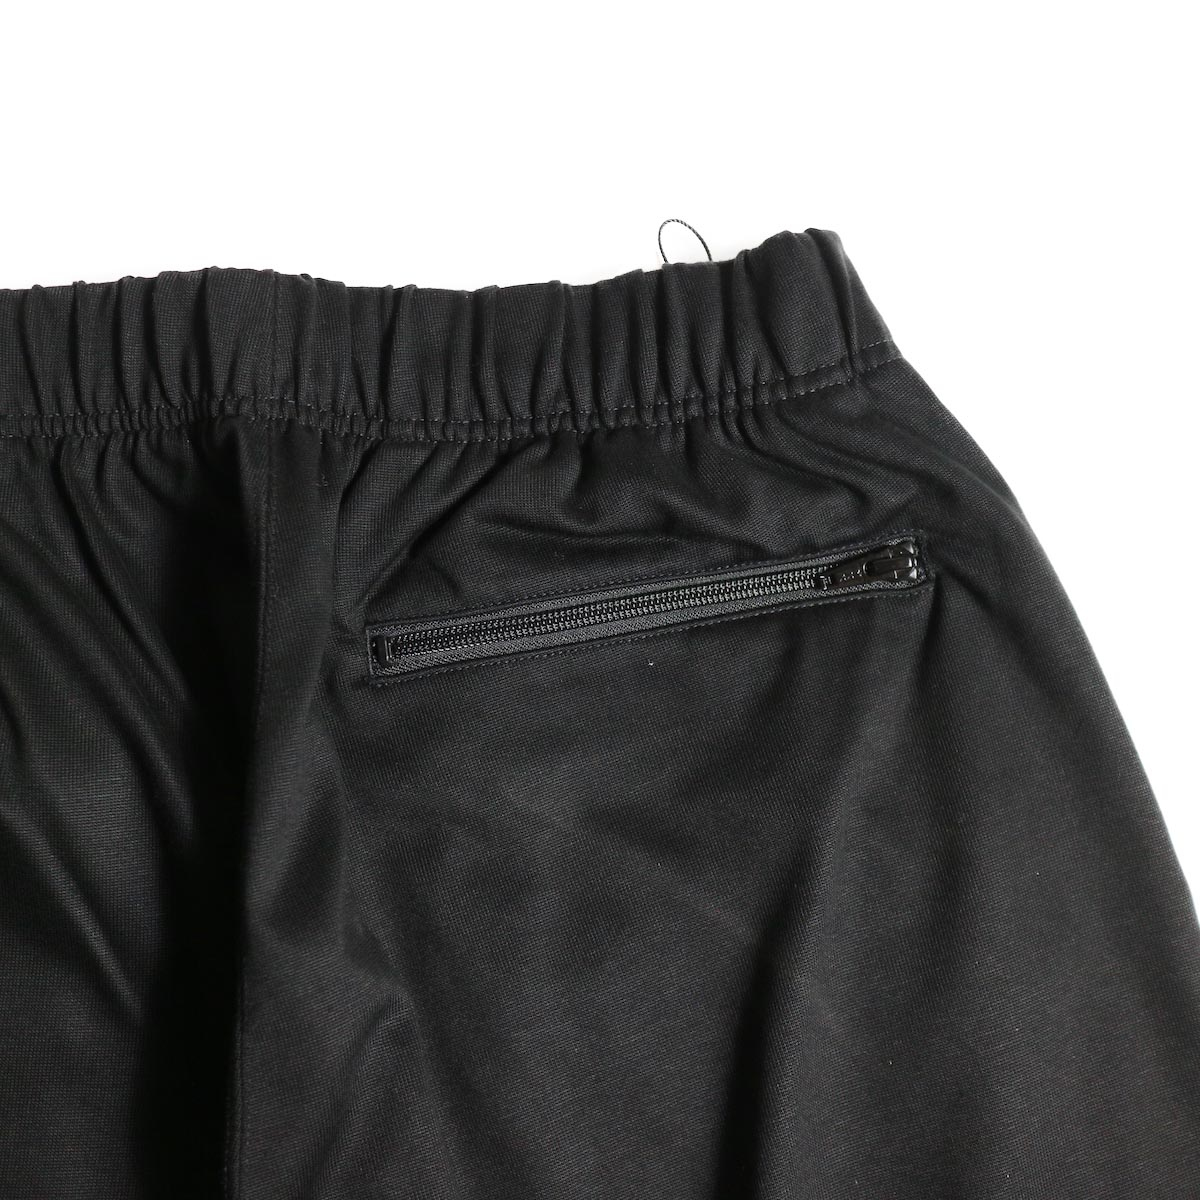 N.HOOLYWOOD / 1202-CP05-034  Wide Easy Pants (Black)ヒップポケット